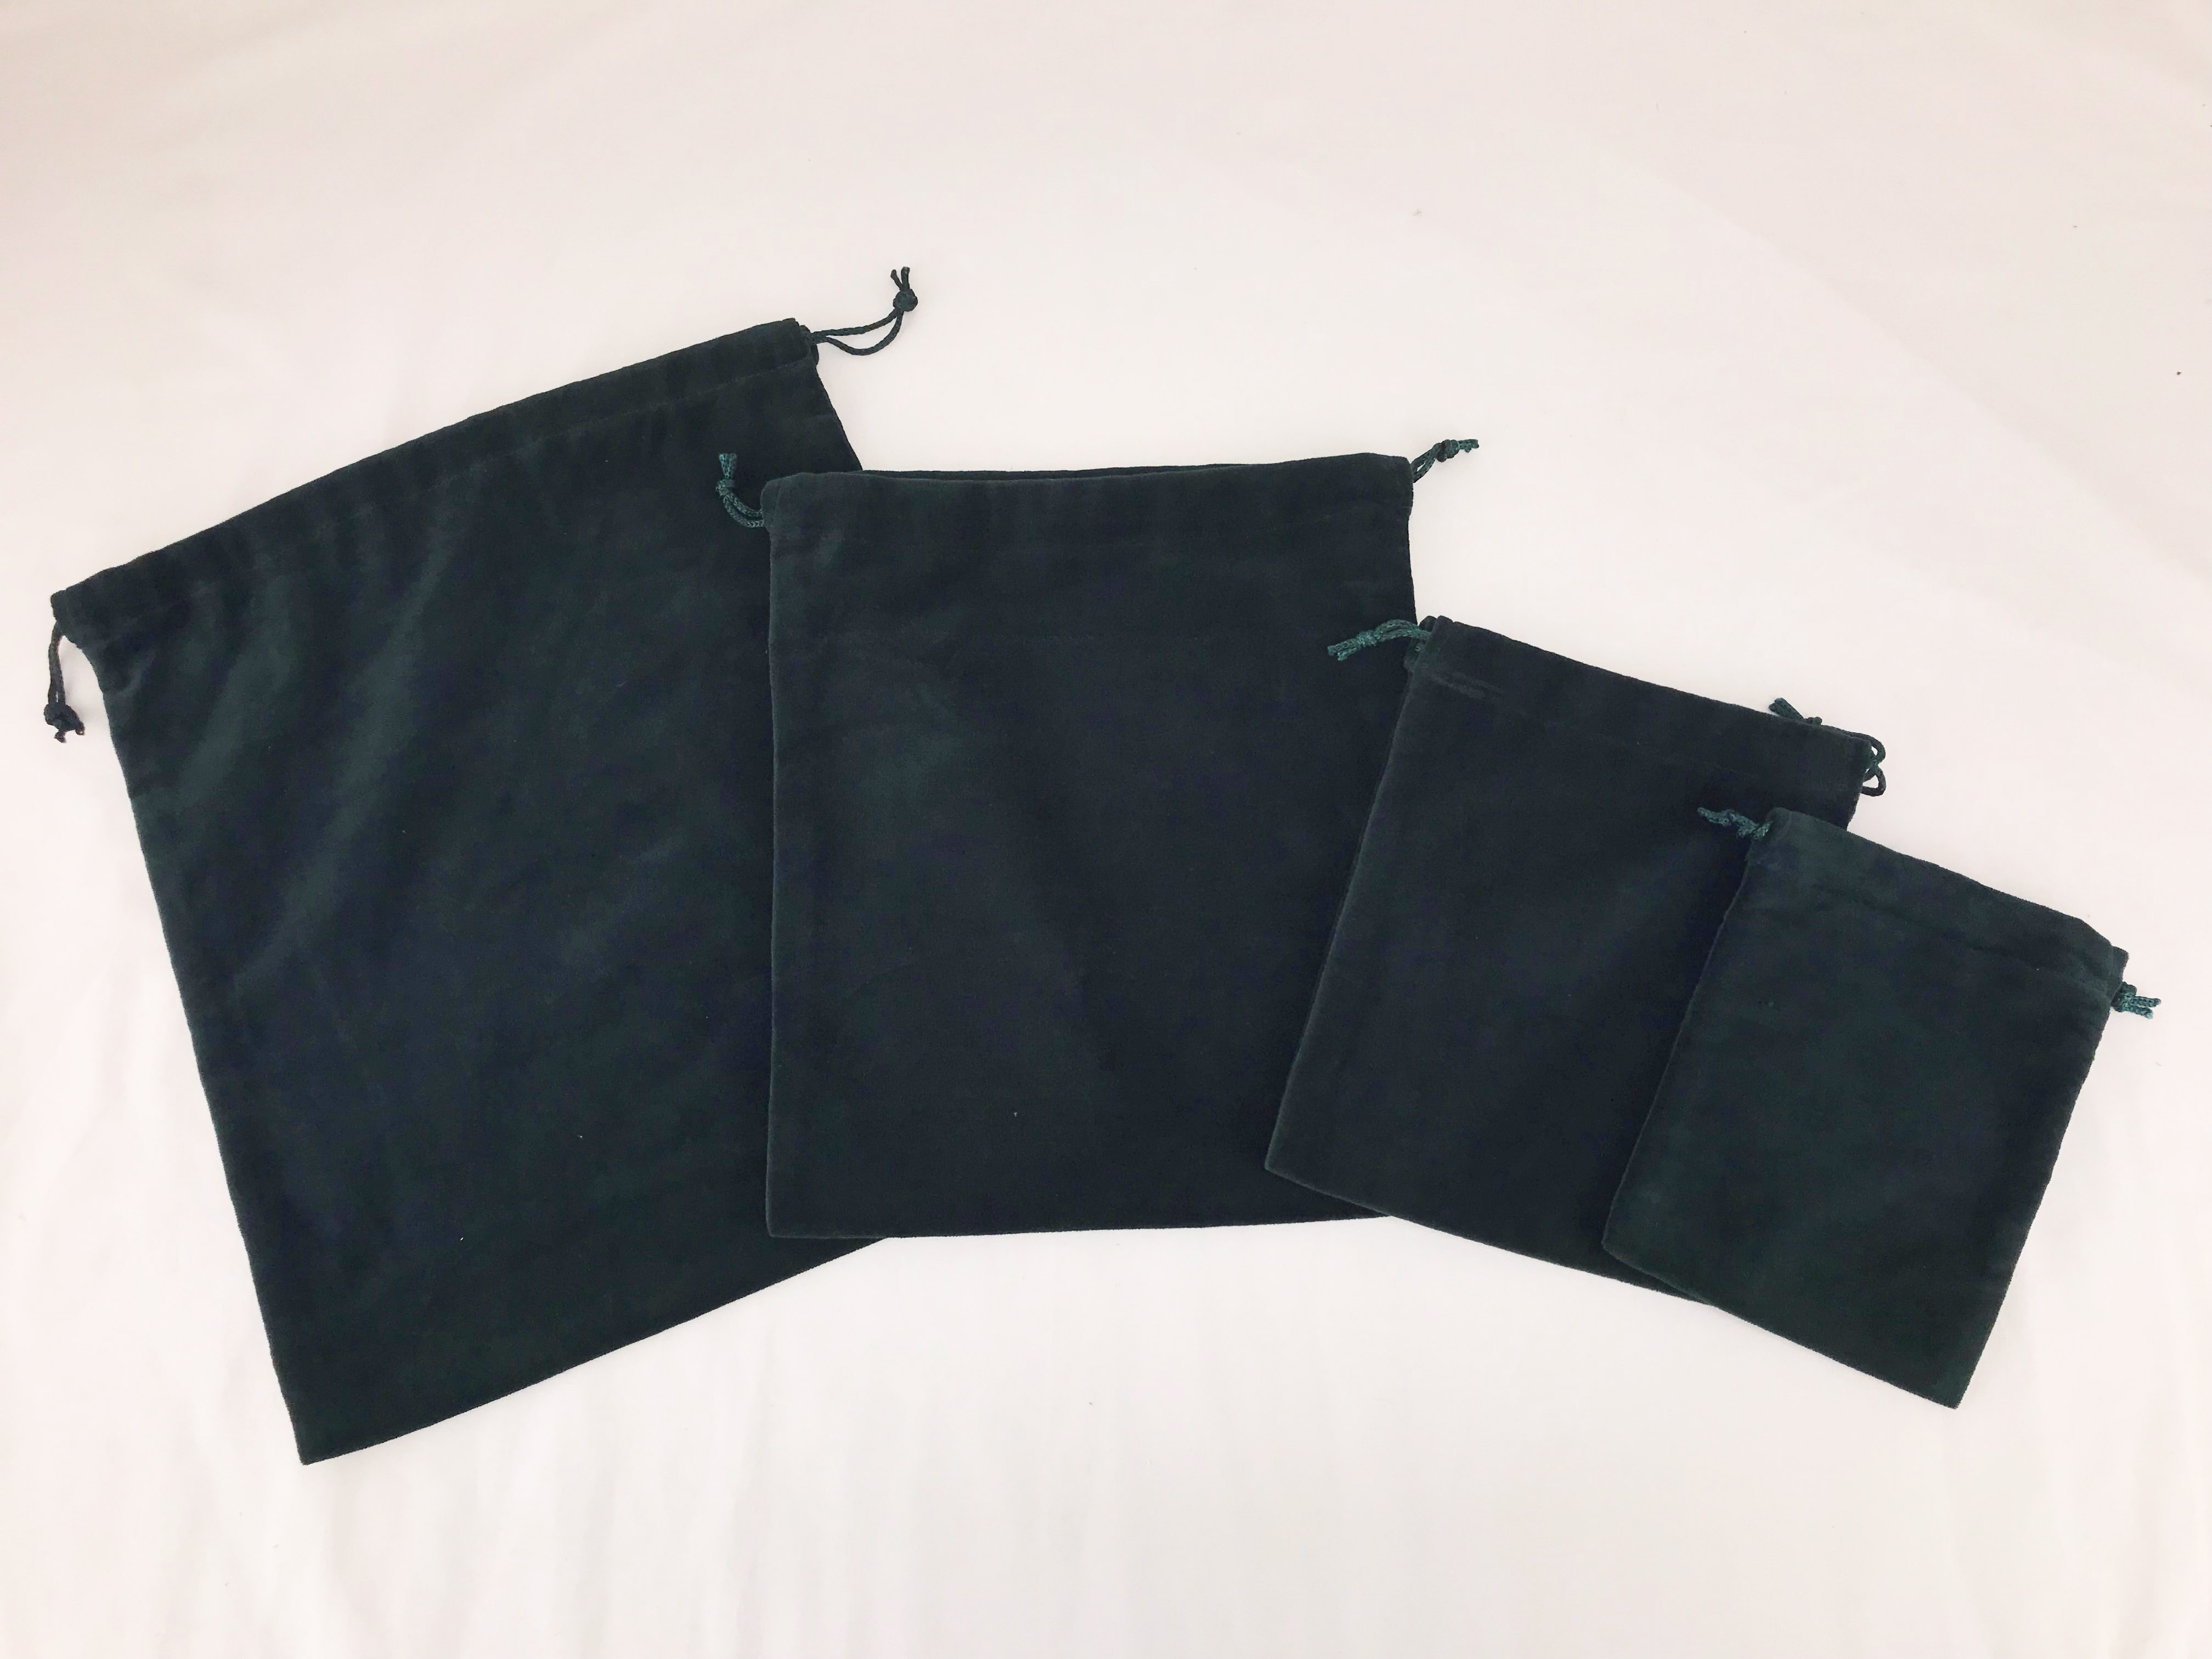 10 X Cremains Bags - Green - No Embroidery